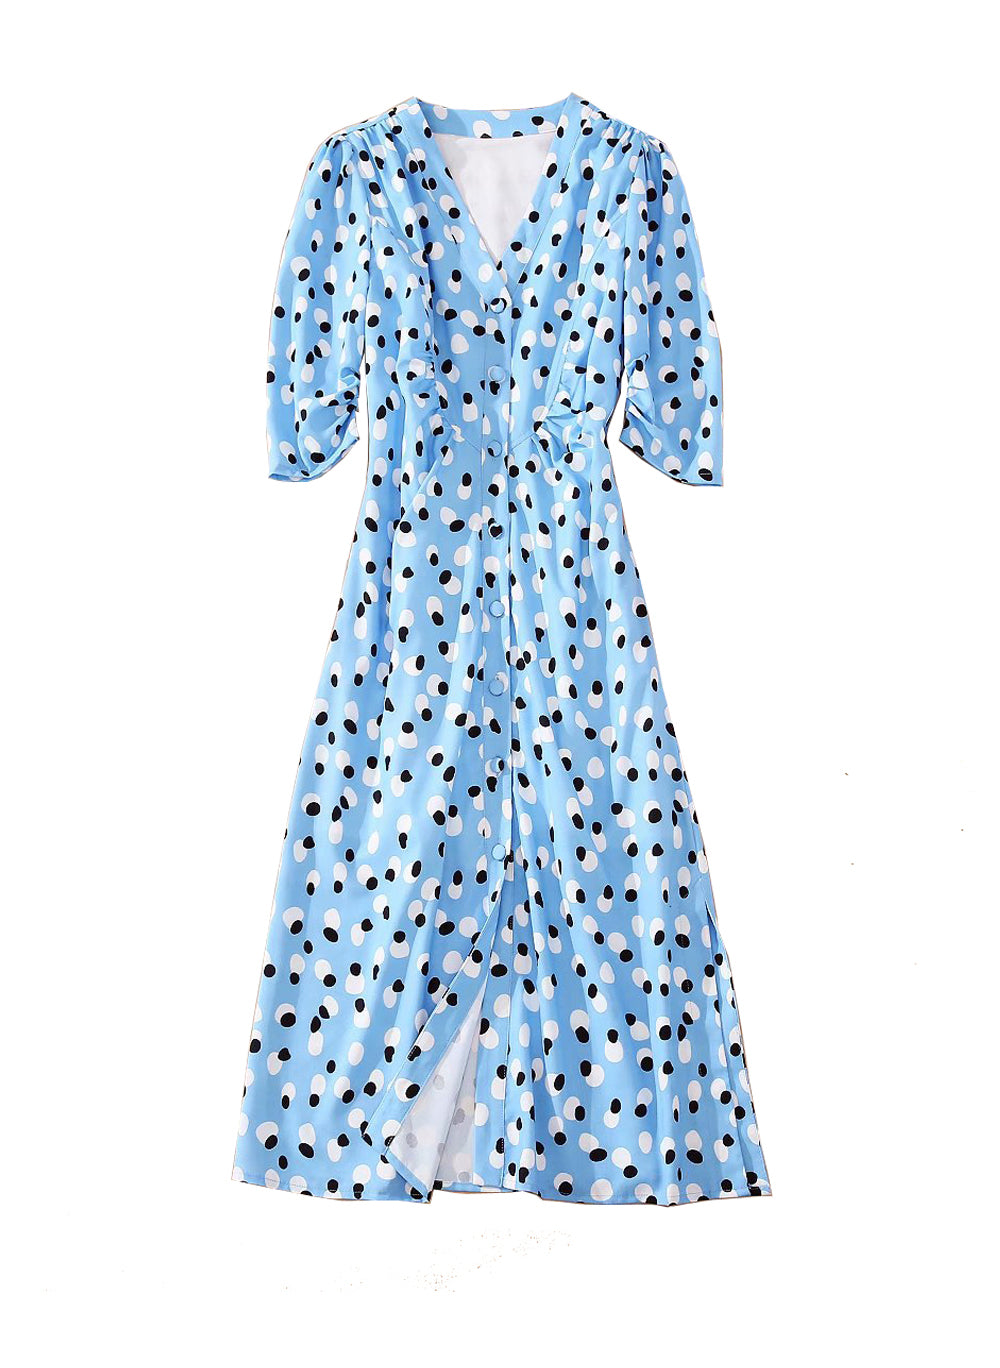 Kate V-neck Button-Front Side Slit Midi Dress in Blue Polka Dot